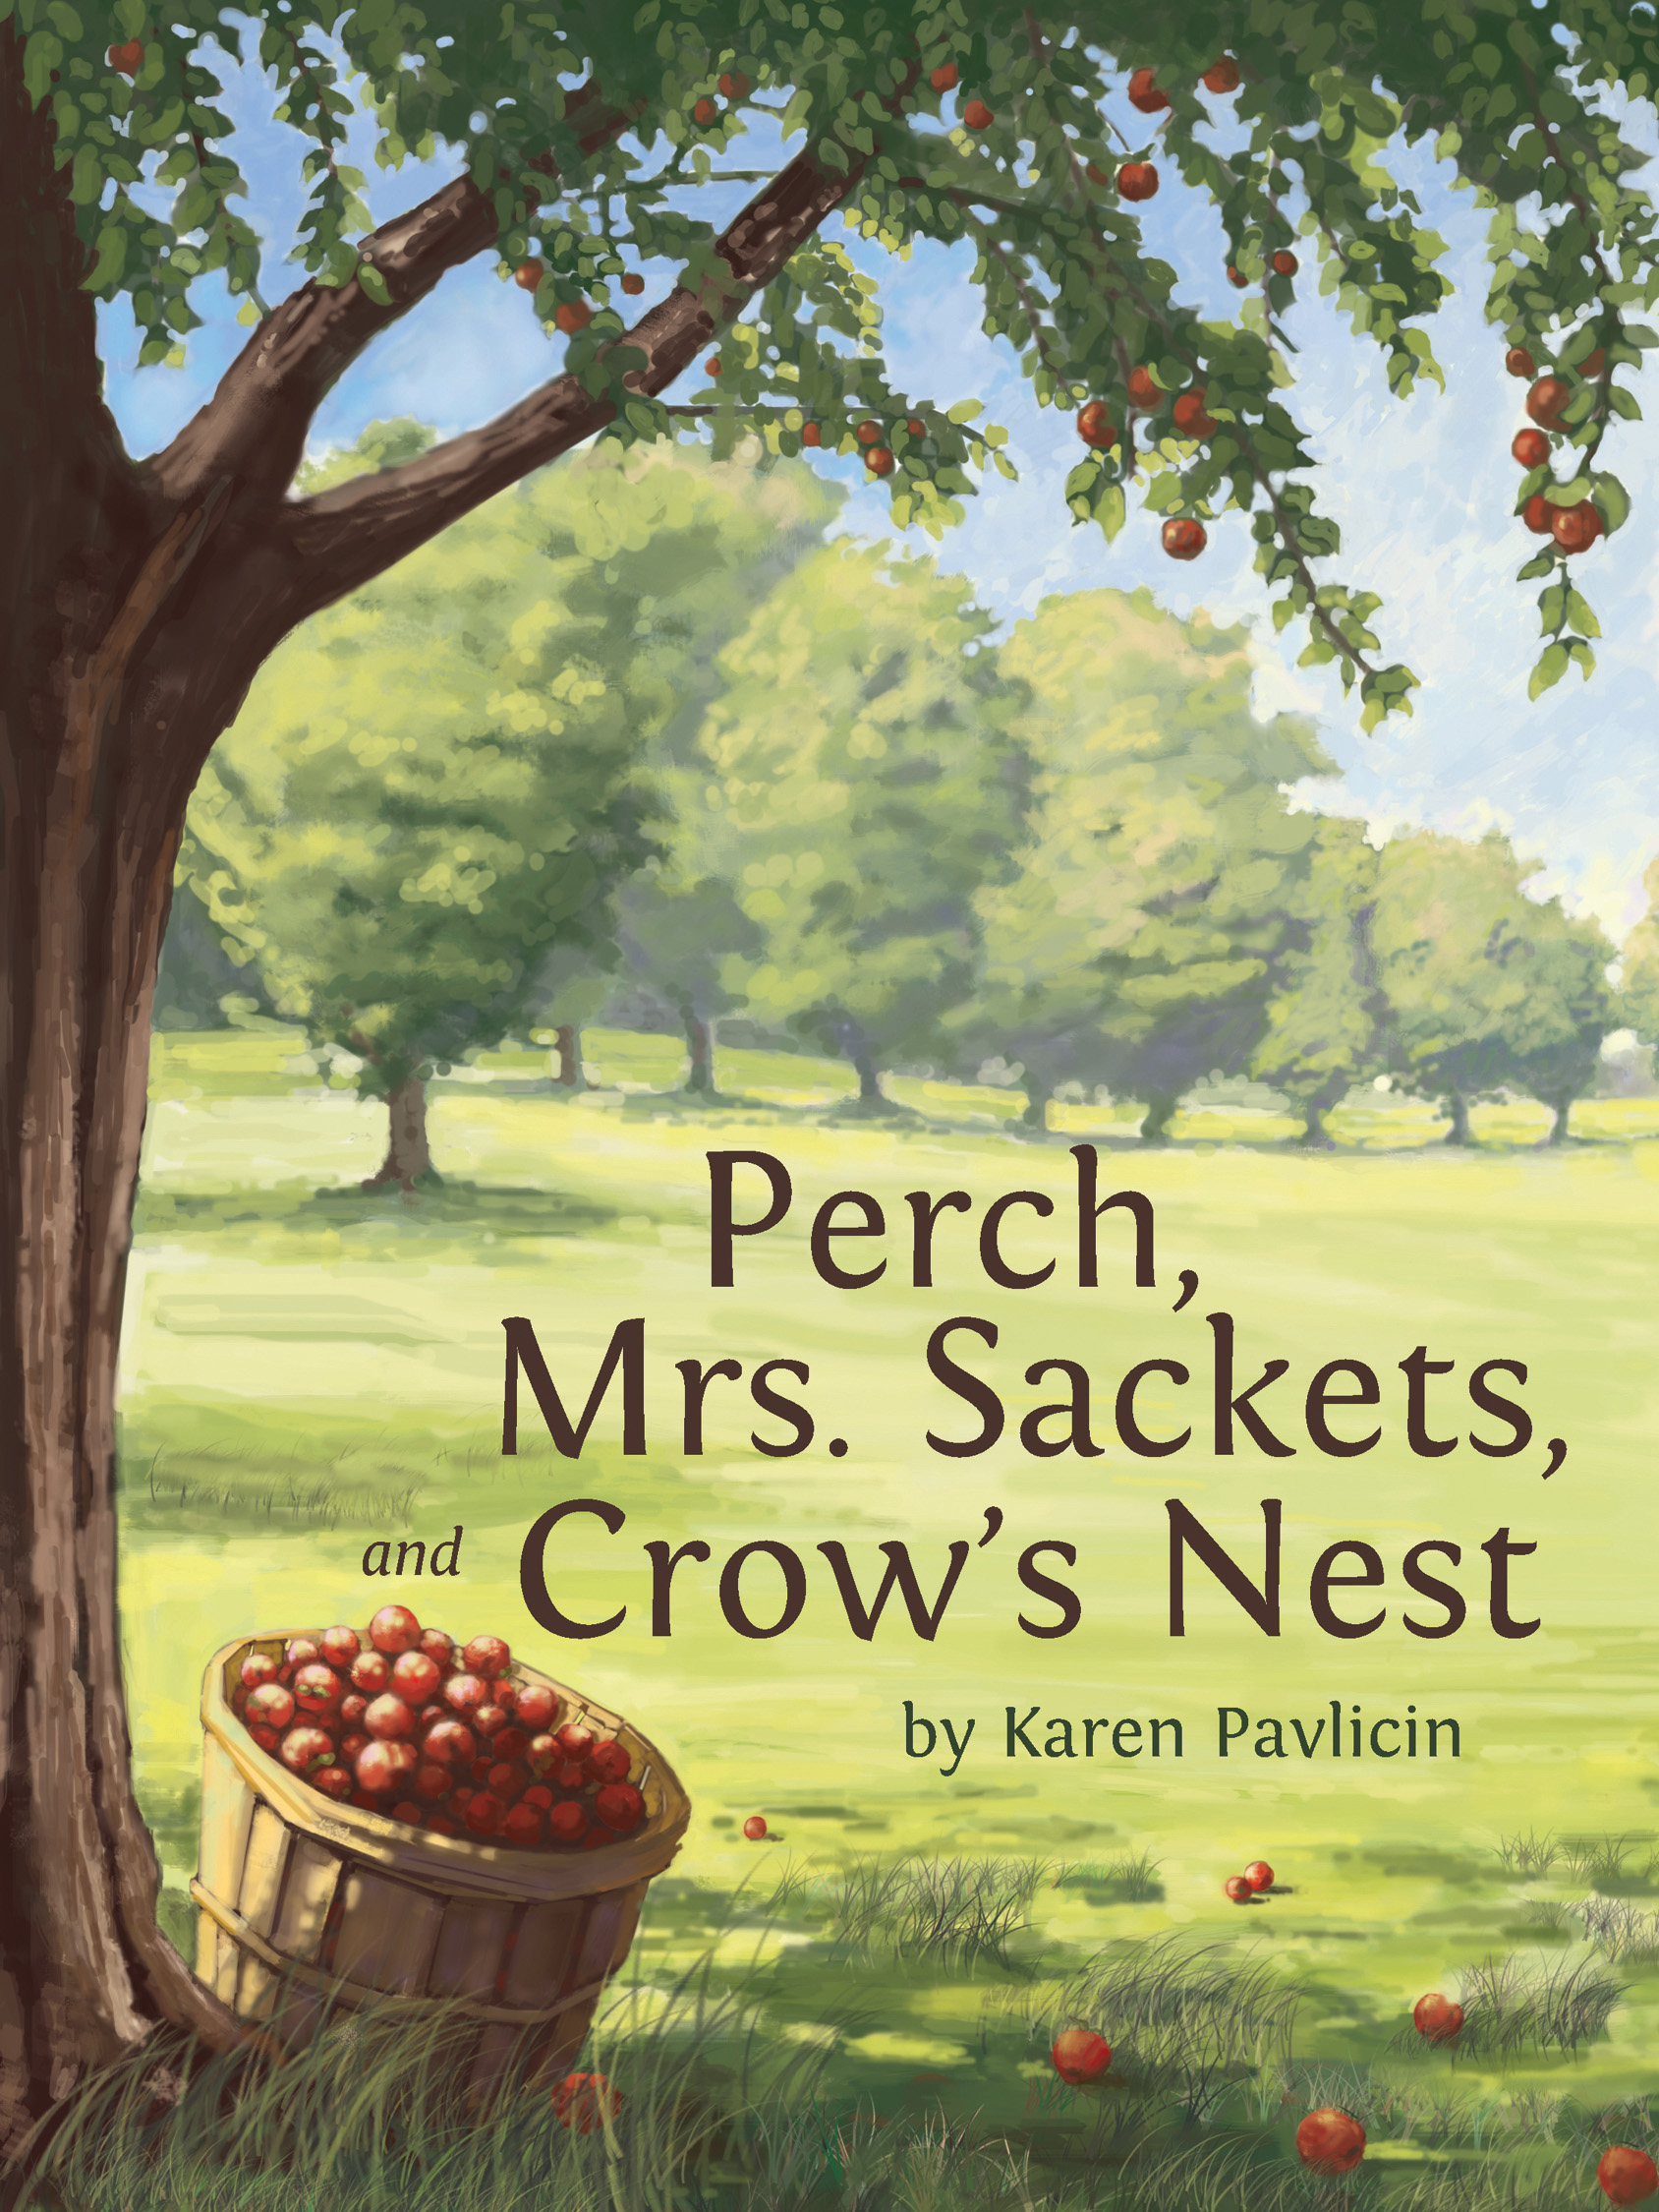 Multiple-award-winning children's novel Perch, Mrs. Sackets, and Crow's Nest by Karen Pavlicin